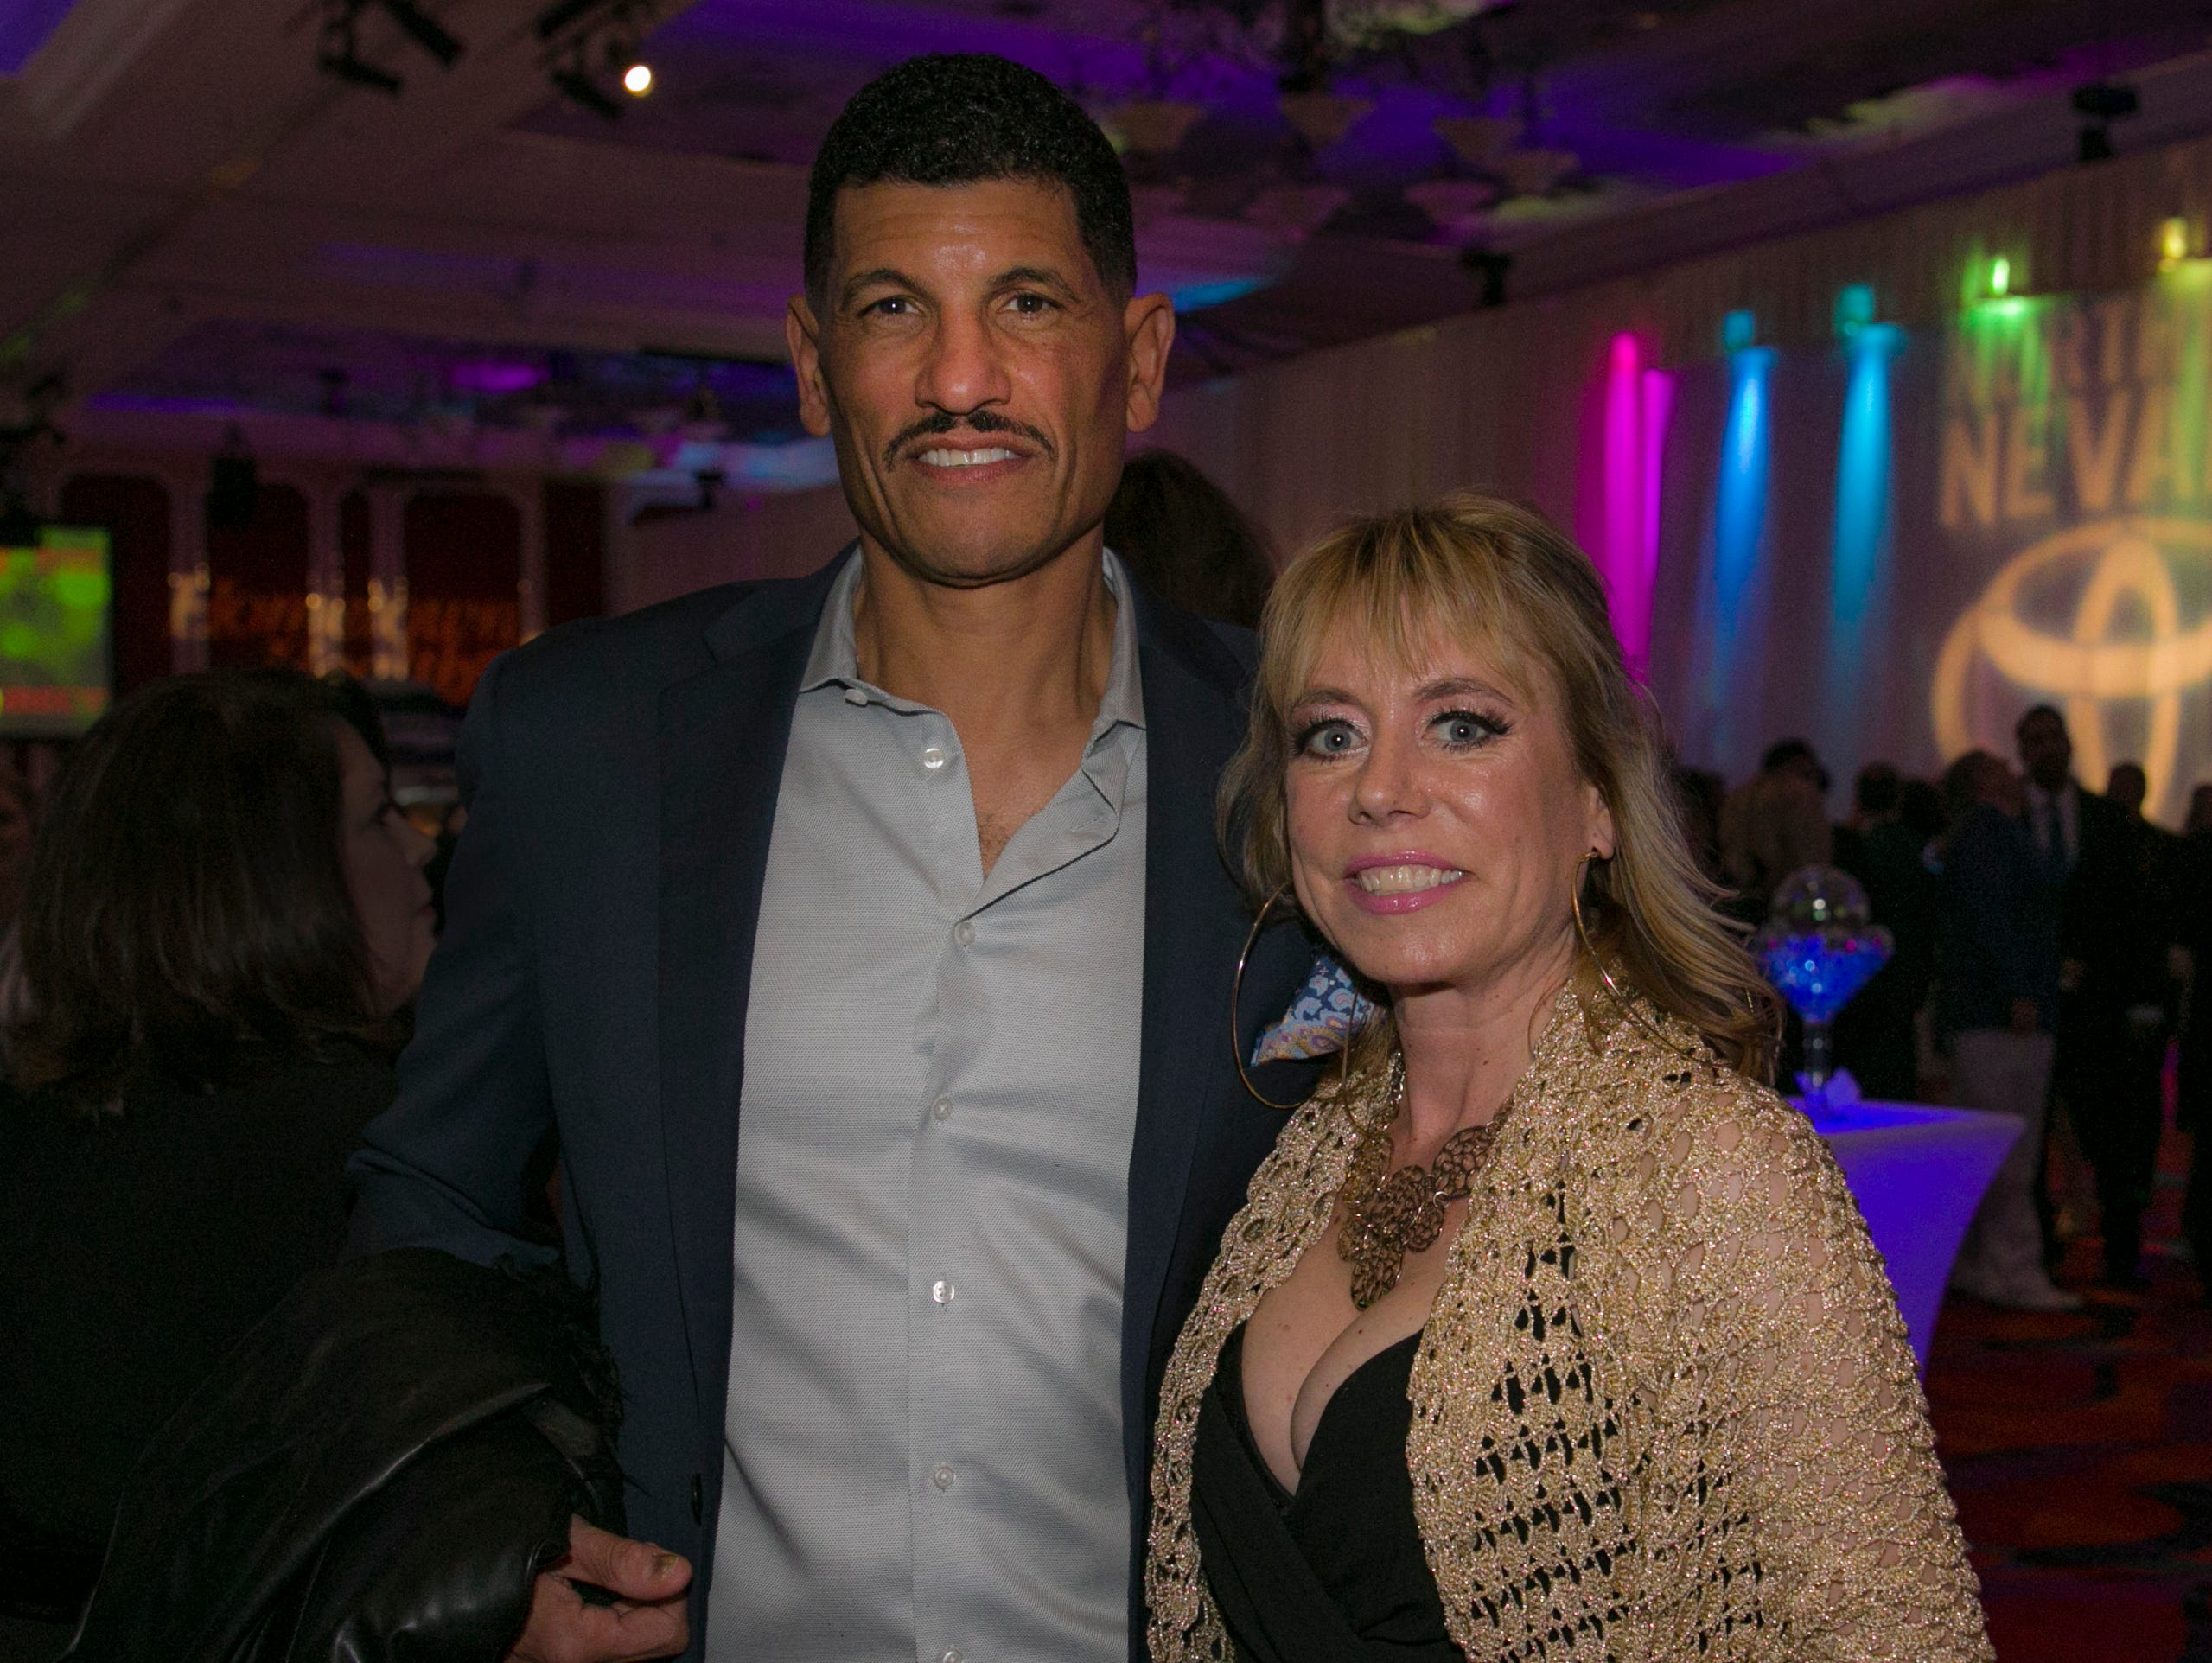 Nevada head football coach Jay Norvell and wife Kim during the 10th Annual Blue Tie Ball at the Peppermill Resort Spa Casino in Reno, NV on Friday night, Feb. 1, 2019.